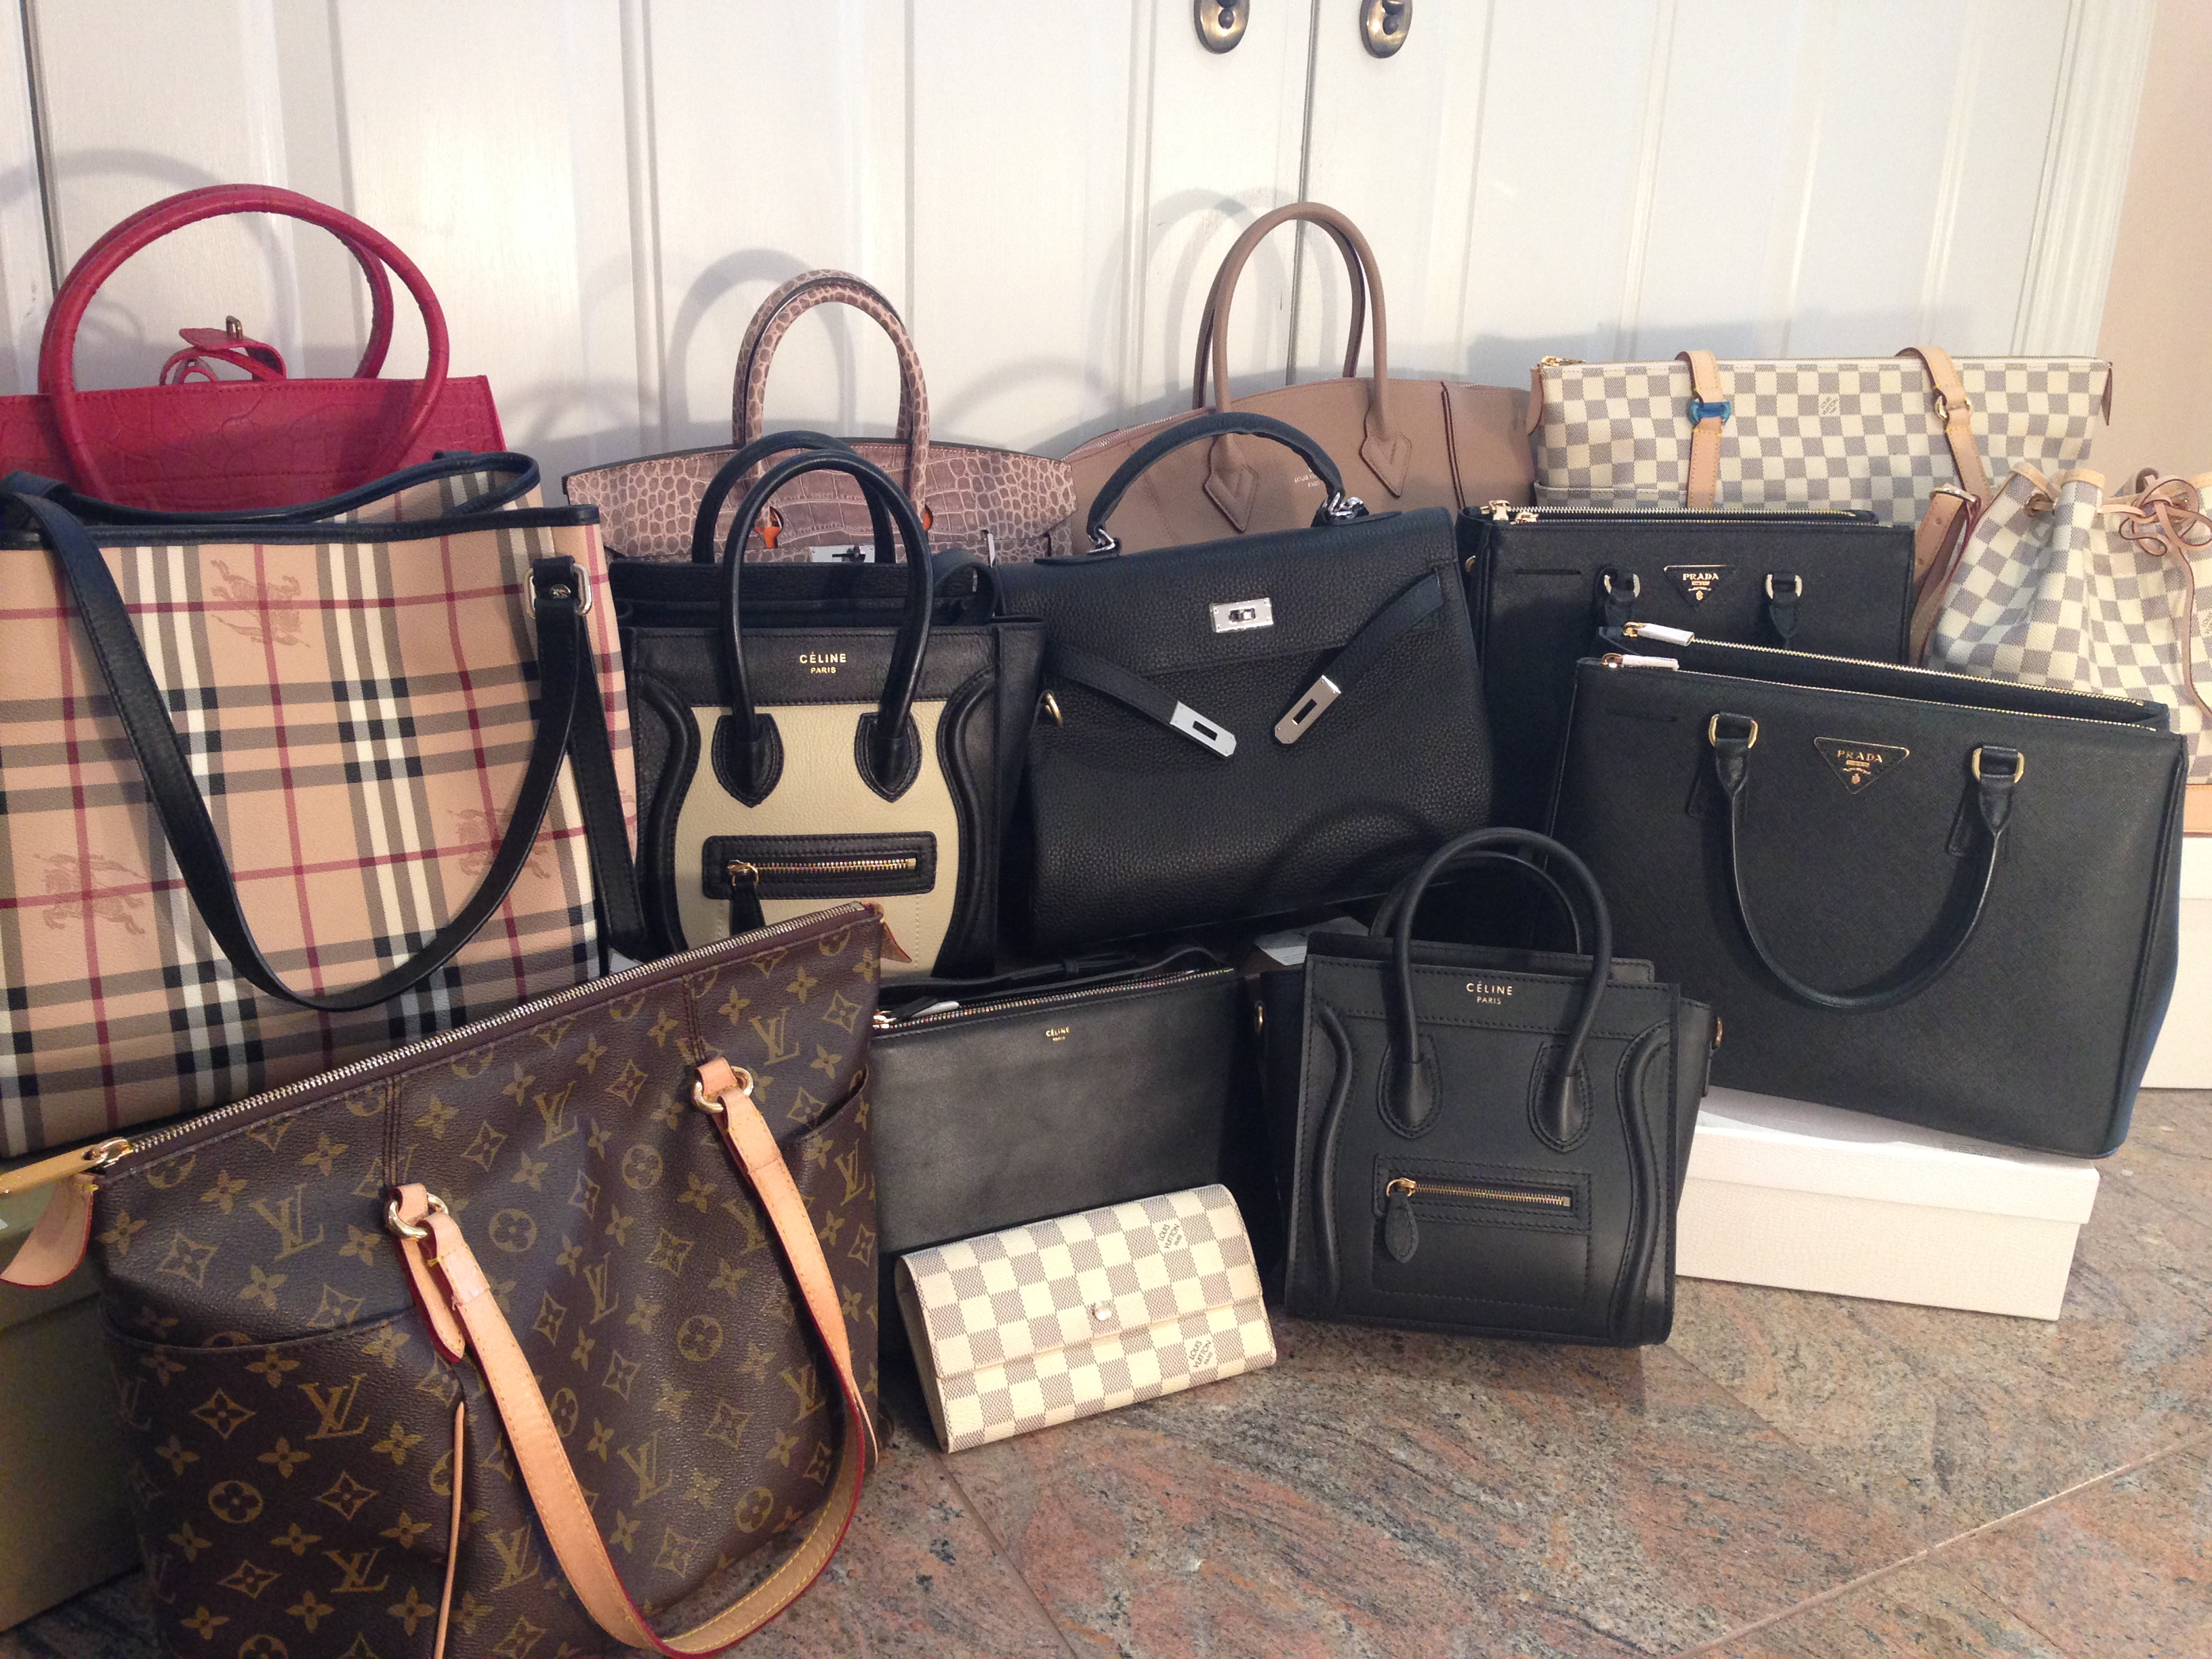 RECOMMENDED REPLICA SELLERS LIST Authentic Replica BagsHandbags - Invoice template word 2010 goyard online store